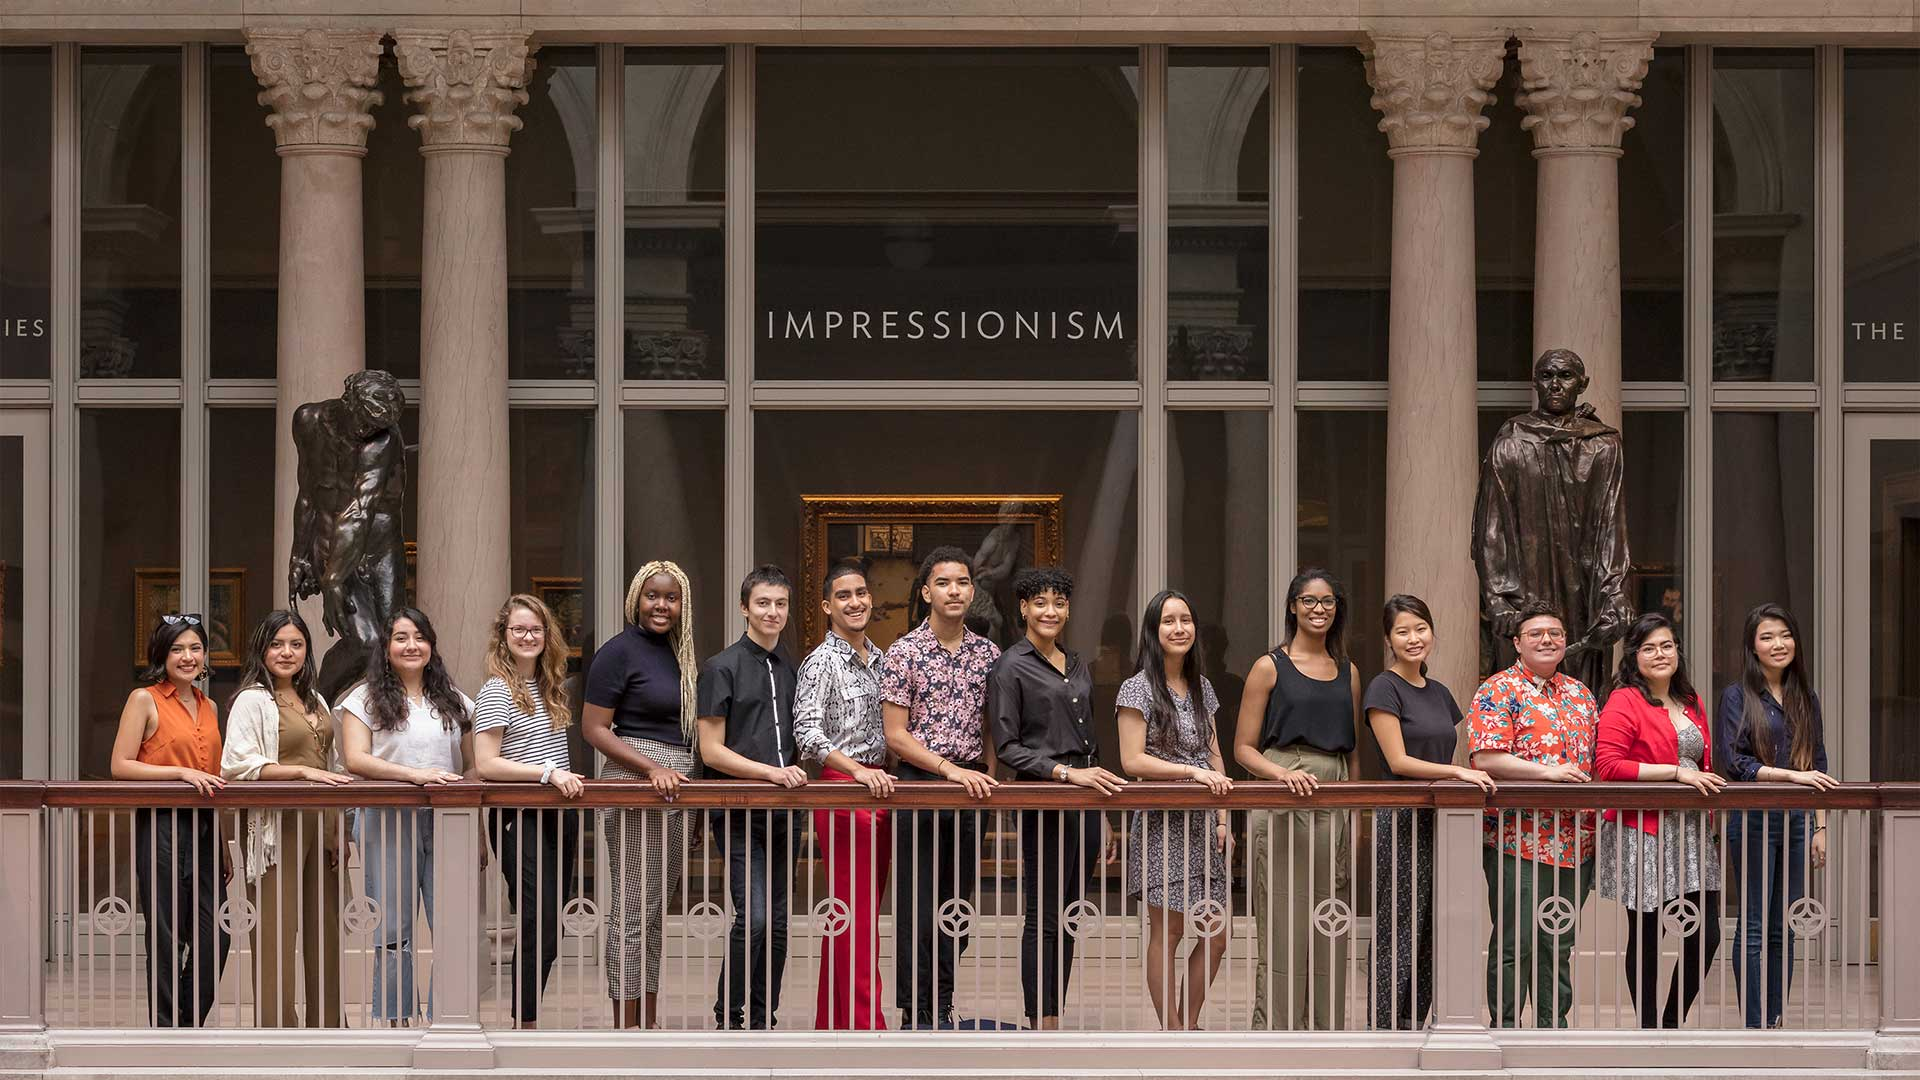 15 student interns pose in front a day-lit atrium before a gallery labeled impressionism